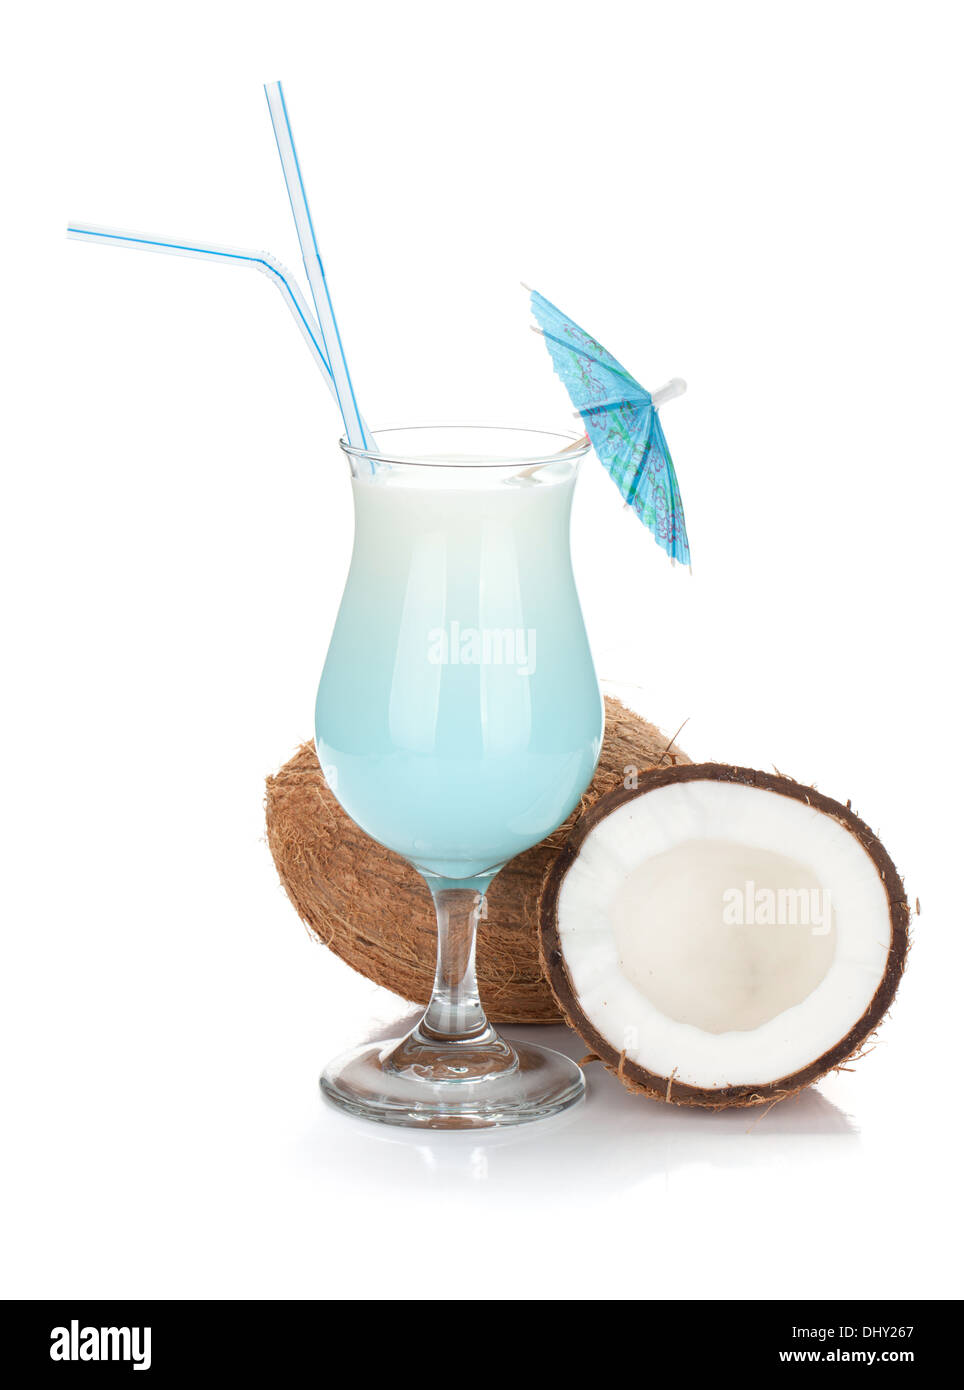 Blue coconut cream cocktail. Isolated on white background - Stock Image